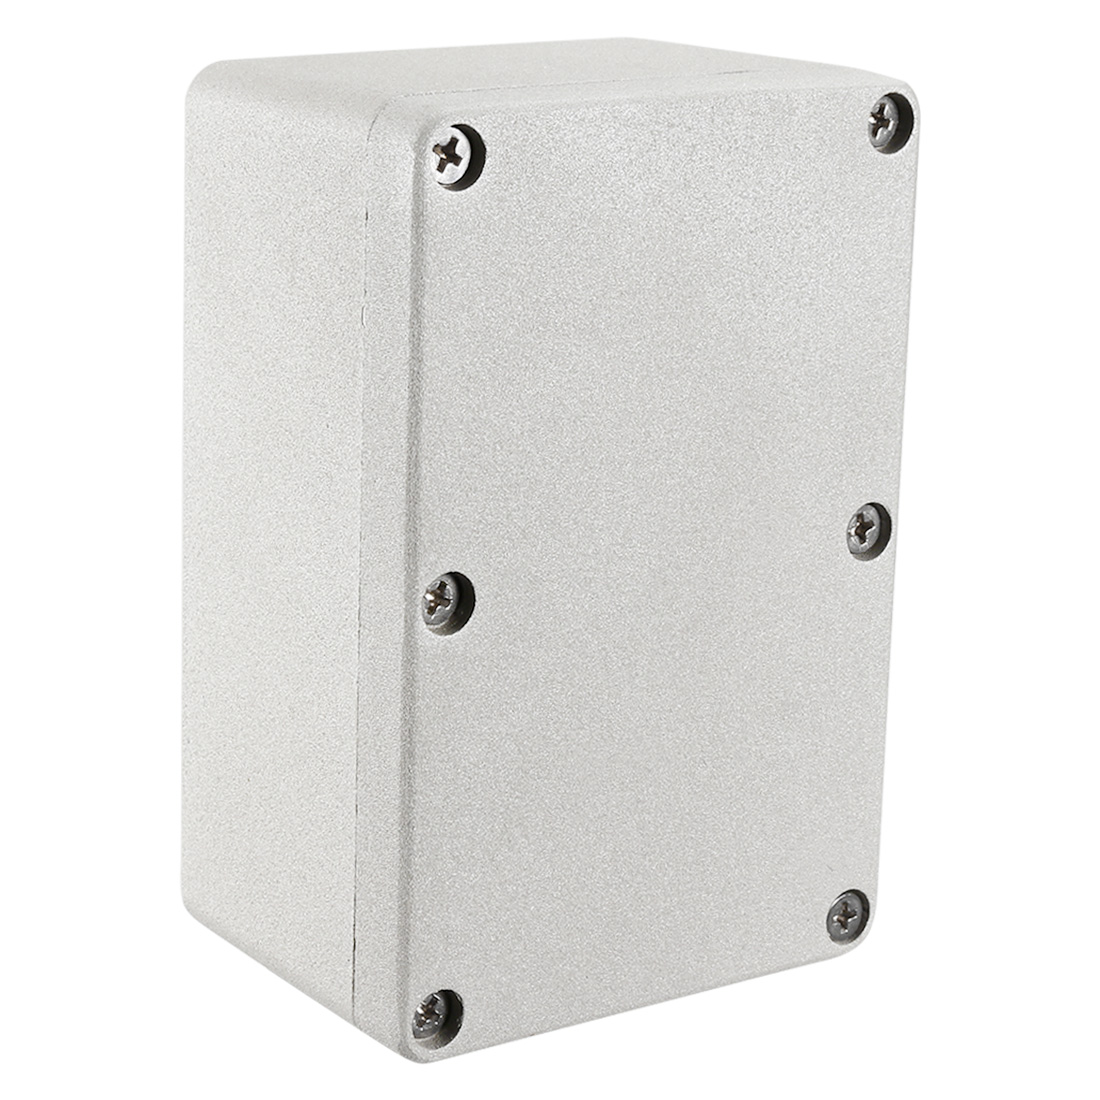 "4.7""x3.2""x2.2"" Aluminum Junction Box Universal Enclosure w Two Horns"